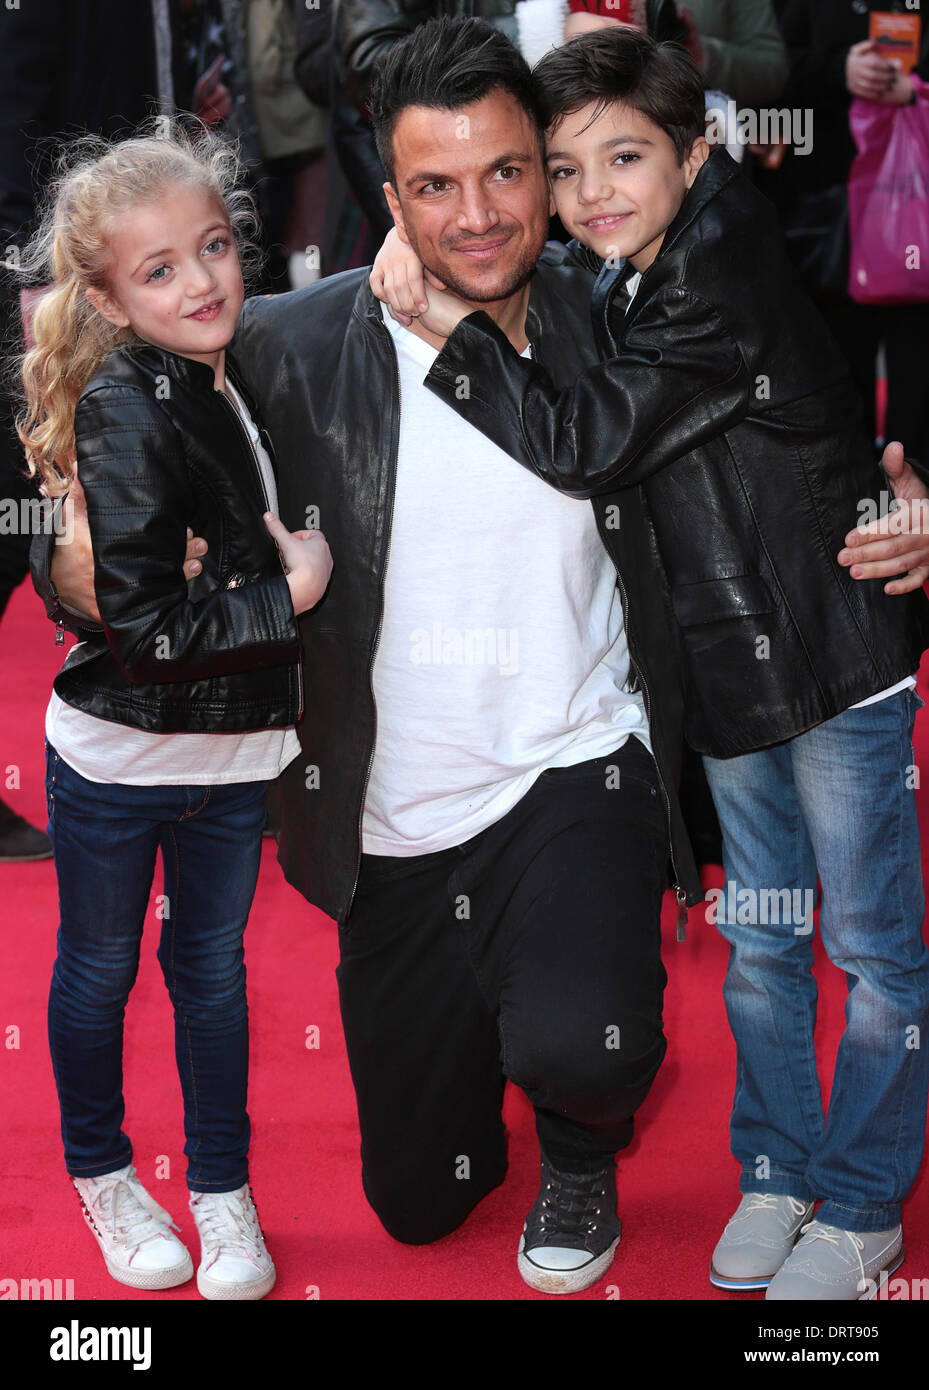 London uk 1st february 2014 peter andre with his two children london uk 1st february 2014 peter andre with his two children princess tiaamii crystal esther andre and junior savva andreas andre arrives for the vip m4hsunfo